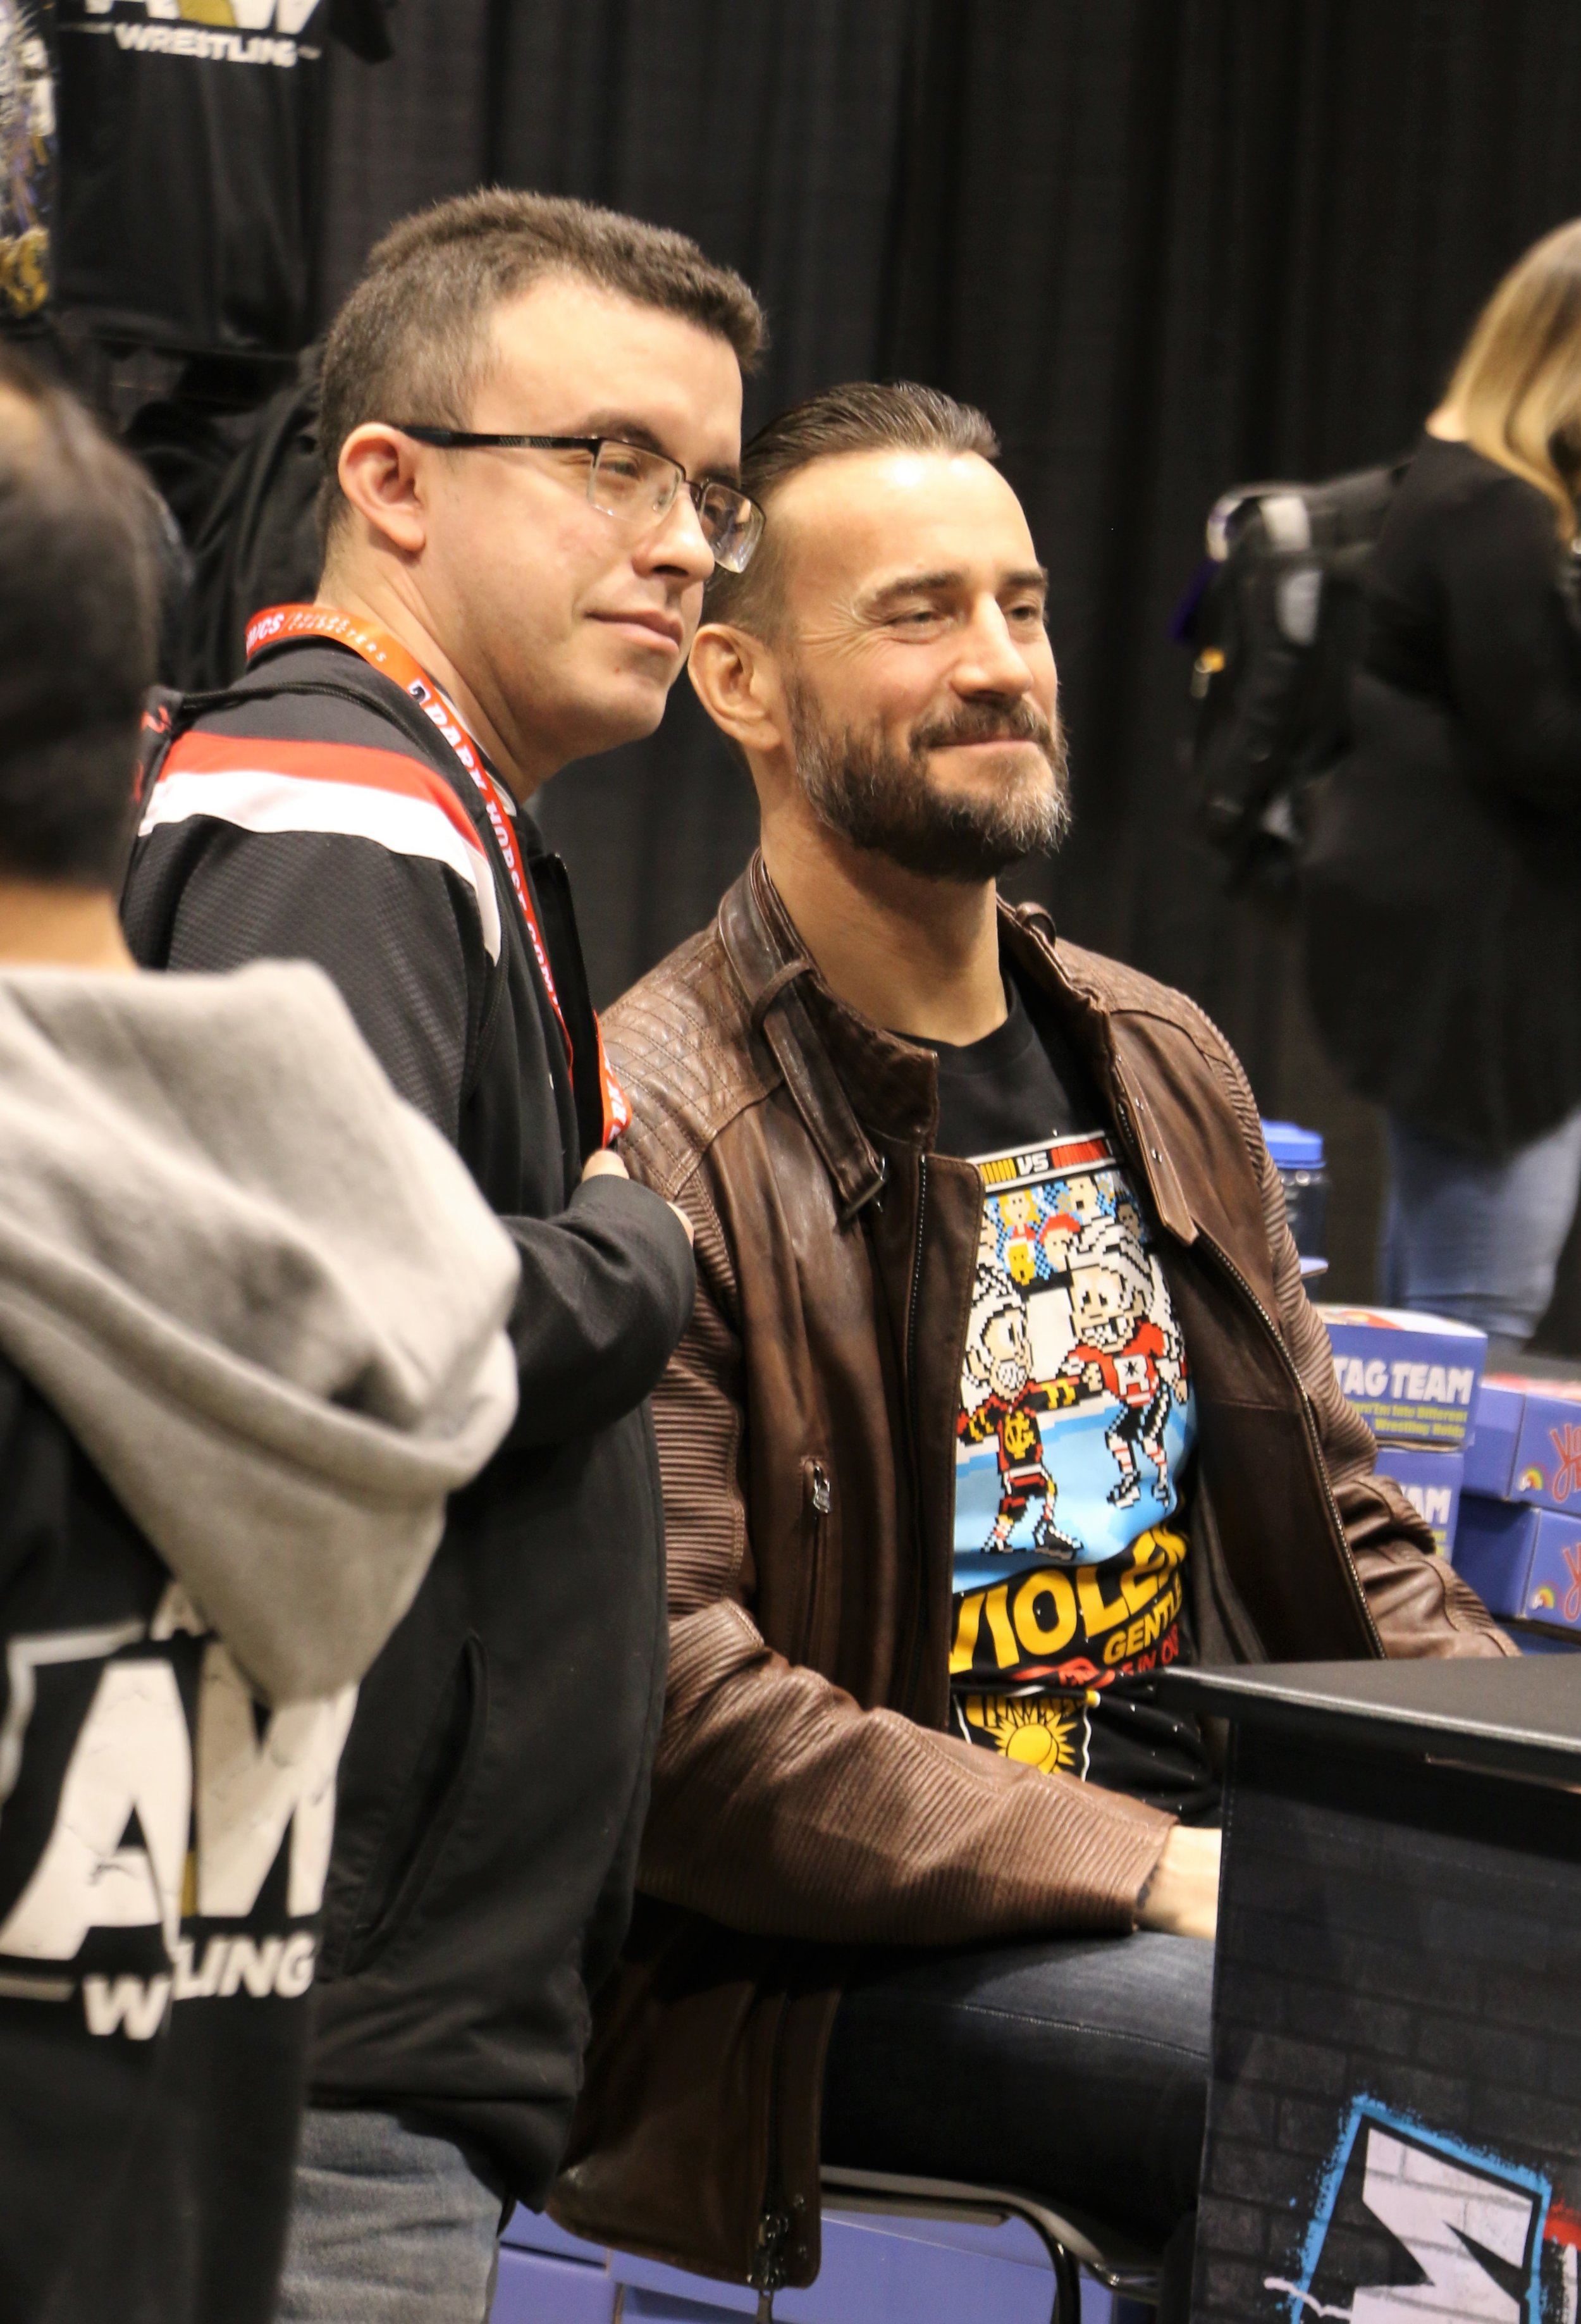 Fans at the AEW panel were inquiring whether Chicago's CM Punk will eventually sign with the company. Punk attended the show as a guest at the Pro Wrestling Tees booth. (Photo by Mike Pankow)